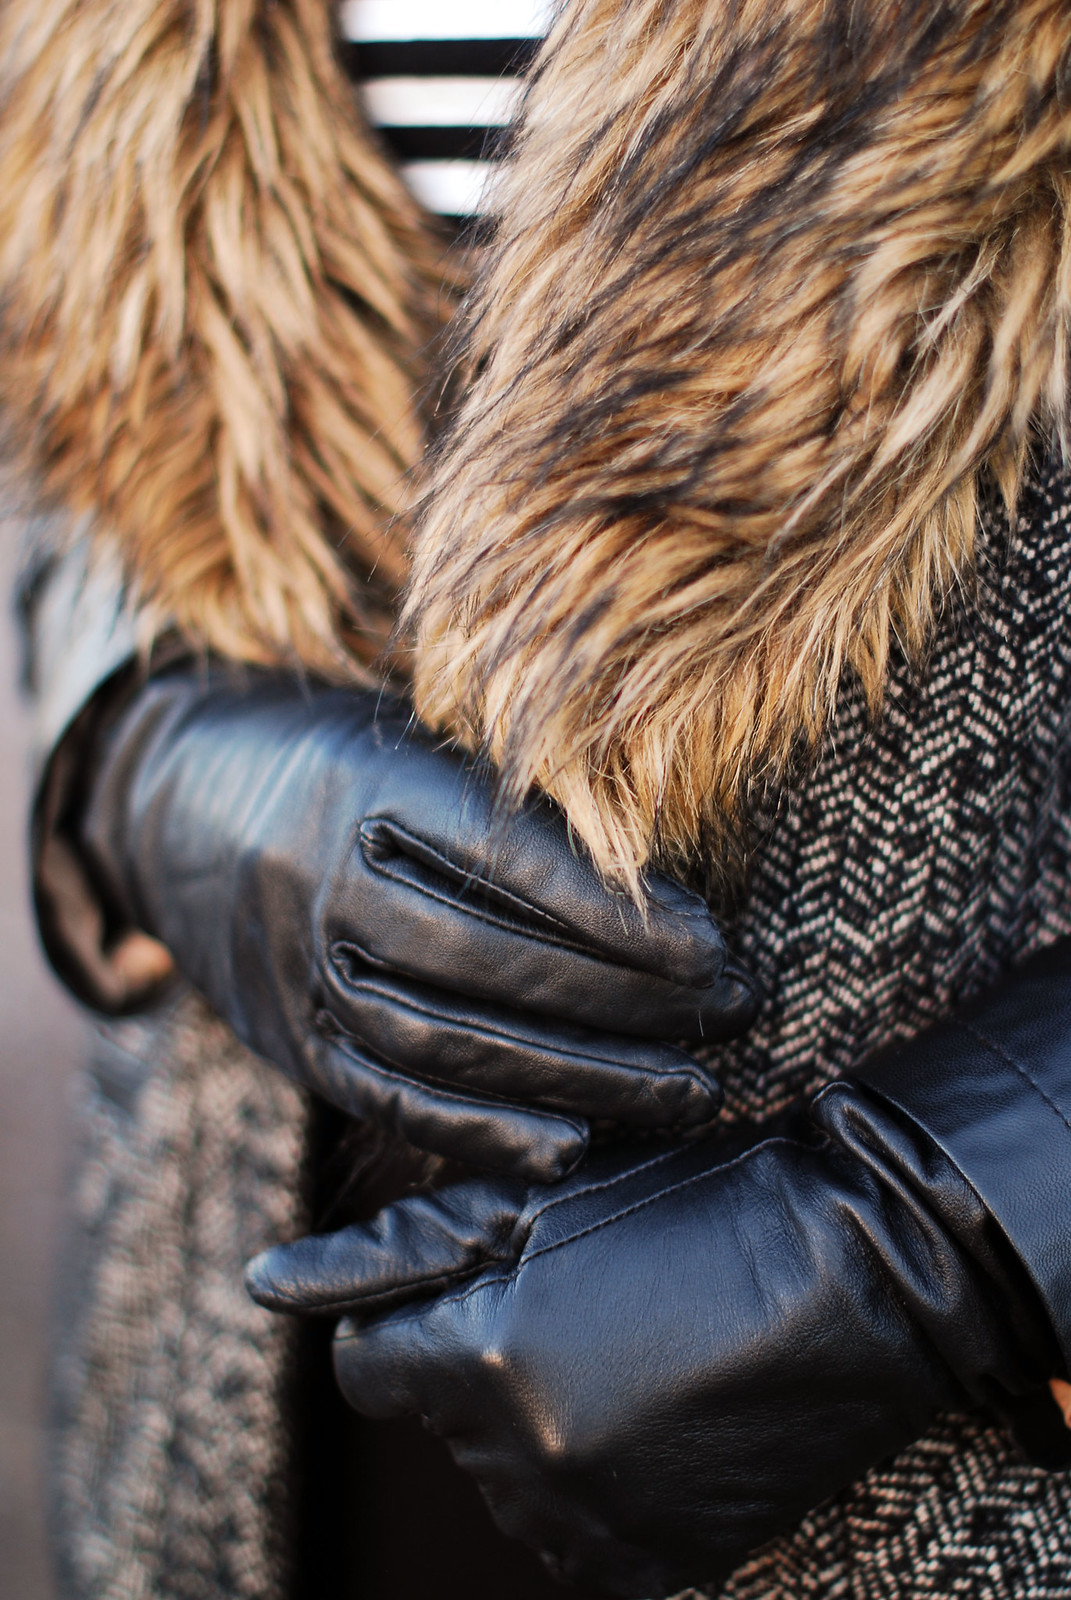 The real fur vs faux fur debate: Should we buy from a retailer that also sells real fur products? What are the ethics on this, and what if you've already bought something from them, not knowing at the time that they sell real fur too?